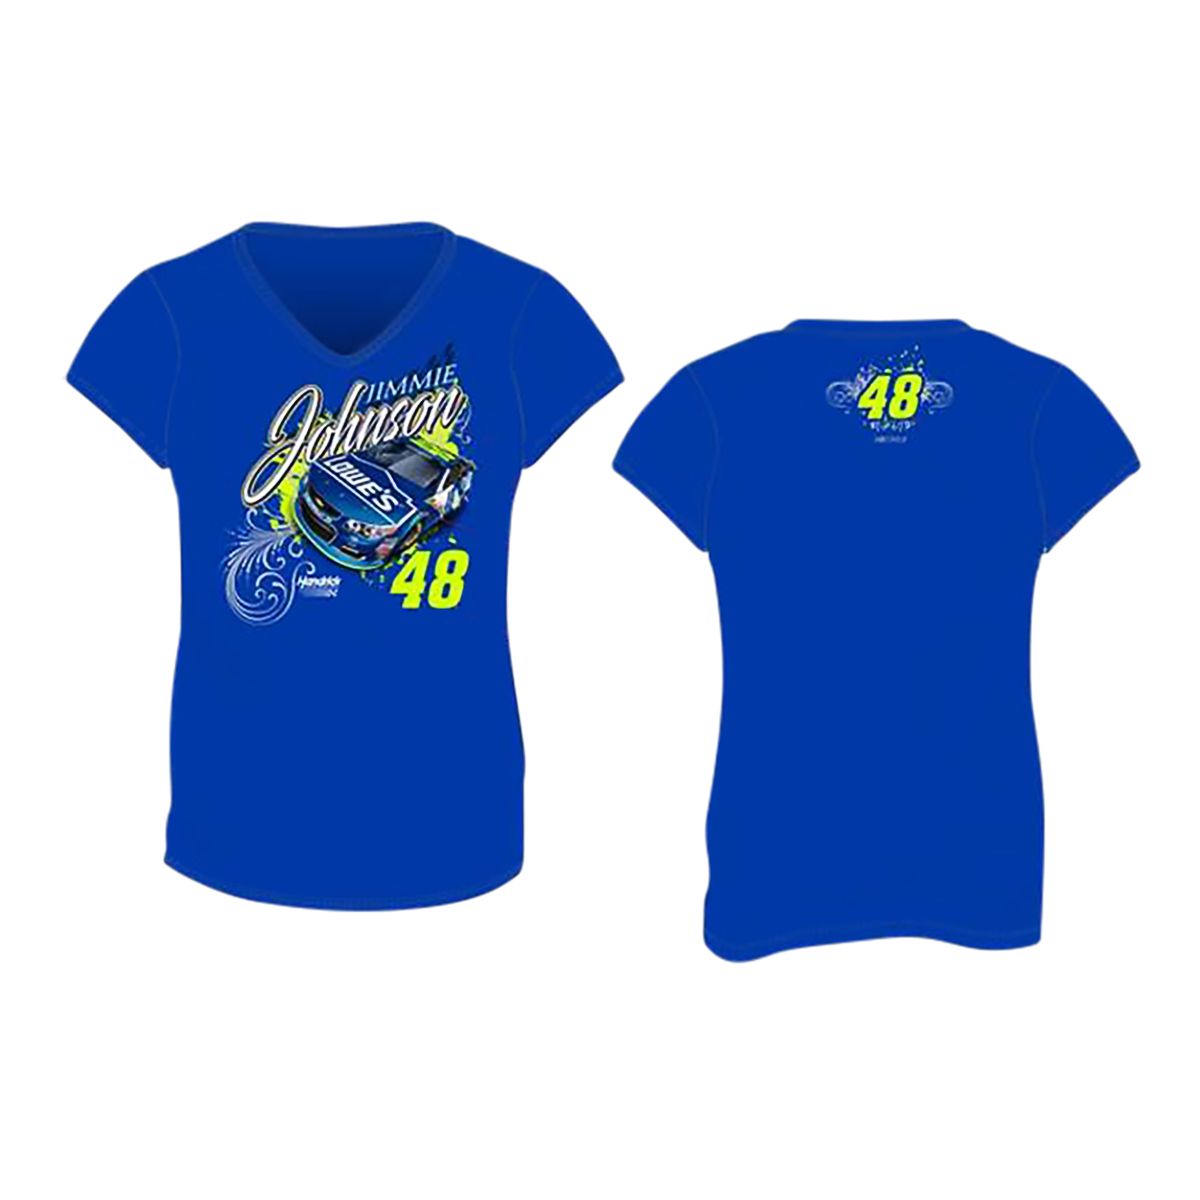 Jimmie Johnson #48 2017 Lowes Ladies V-neck T-shirt